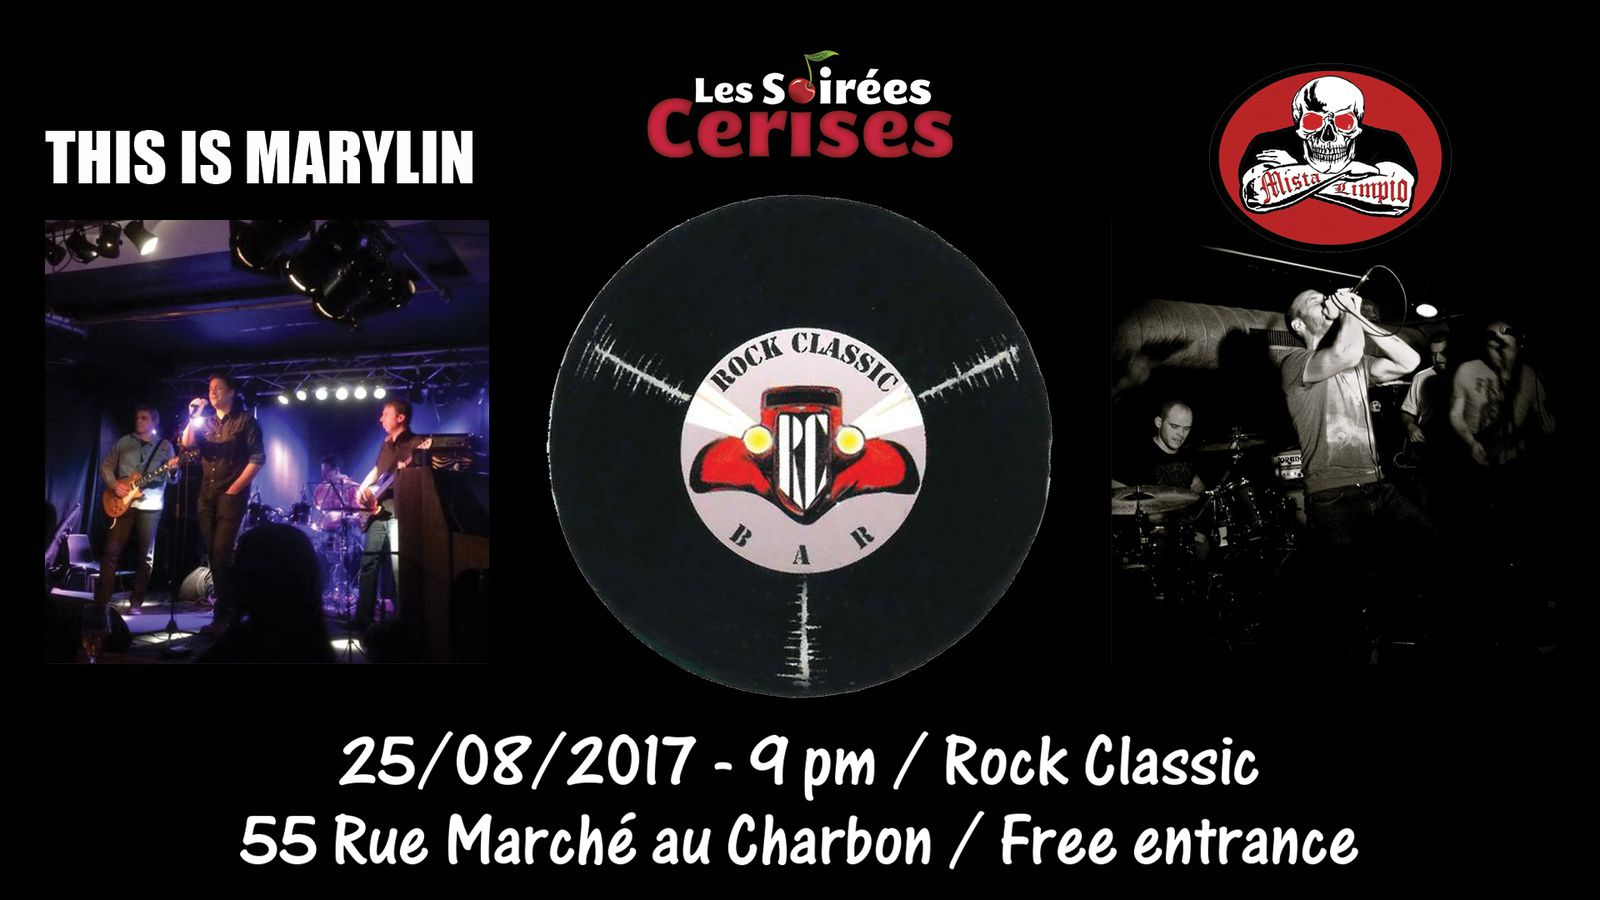 ▶  Vendredi 25/08/2017 - 21:00 This is Marylyn  Blues rock  + 22:00 Mista Limpio  Rock  @ Rock Classic - rue Marché au Charbon, 55 à 1000 Bruxelles